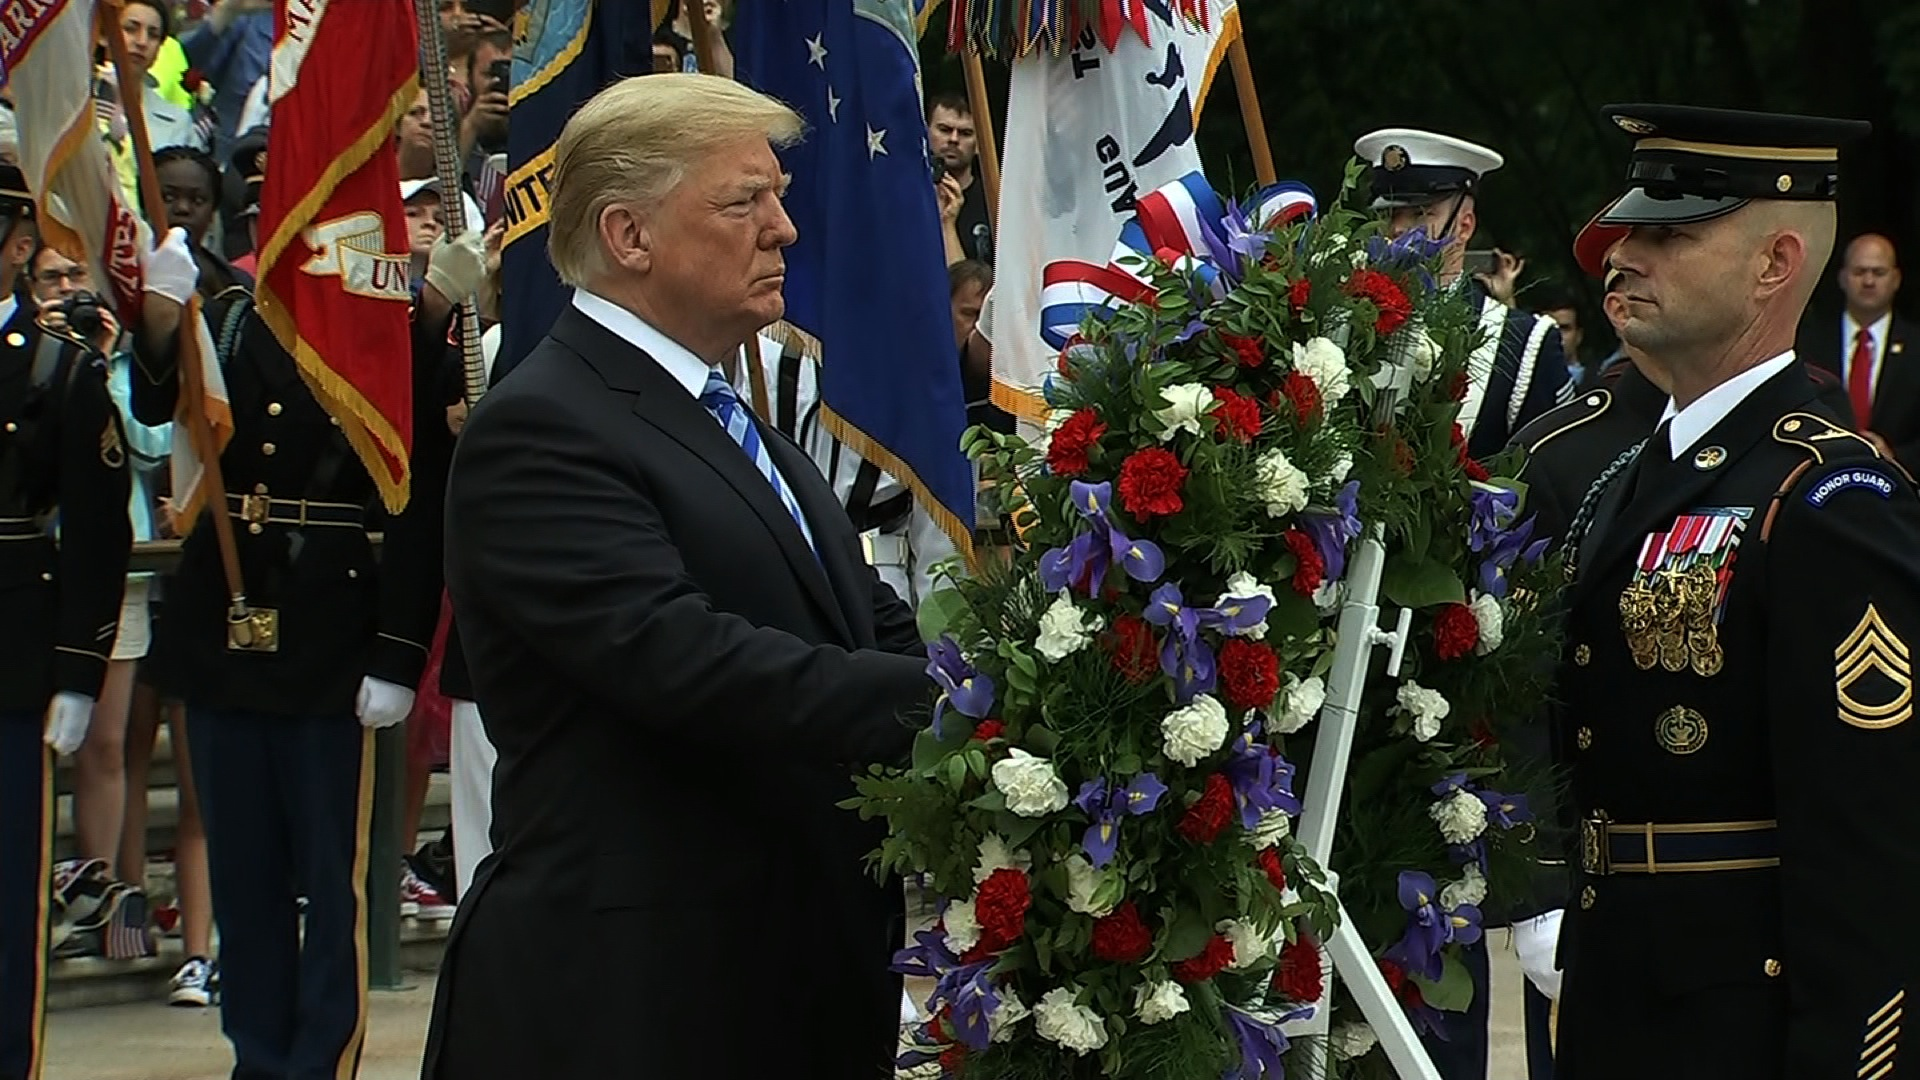 Trump to participate in Memorial Day wreath laying at Arlington National Cemetery